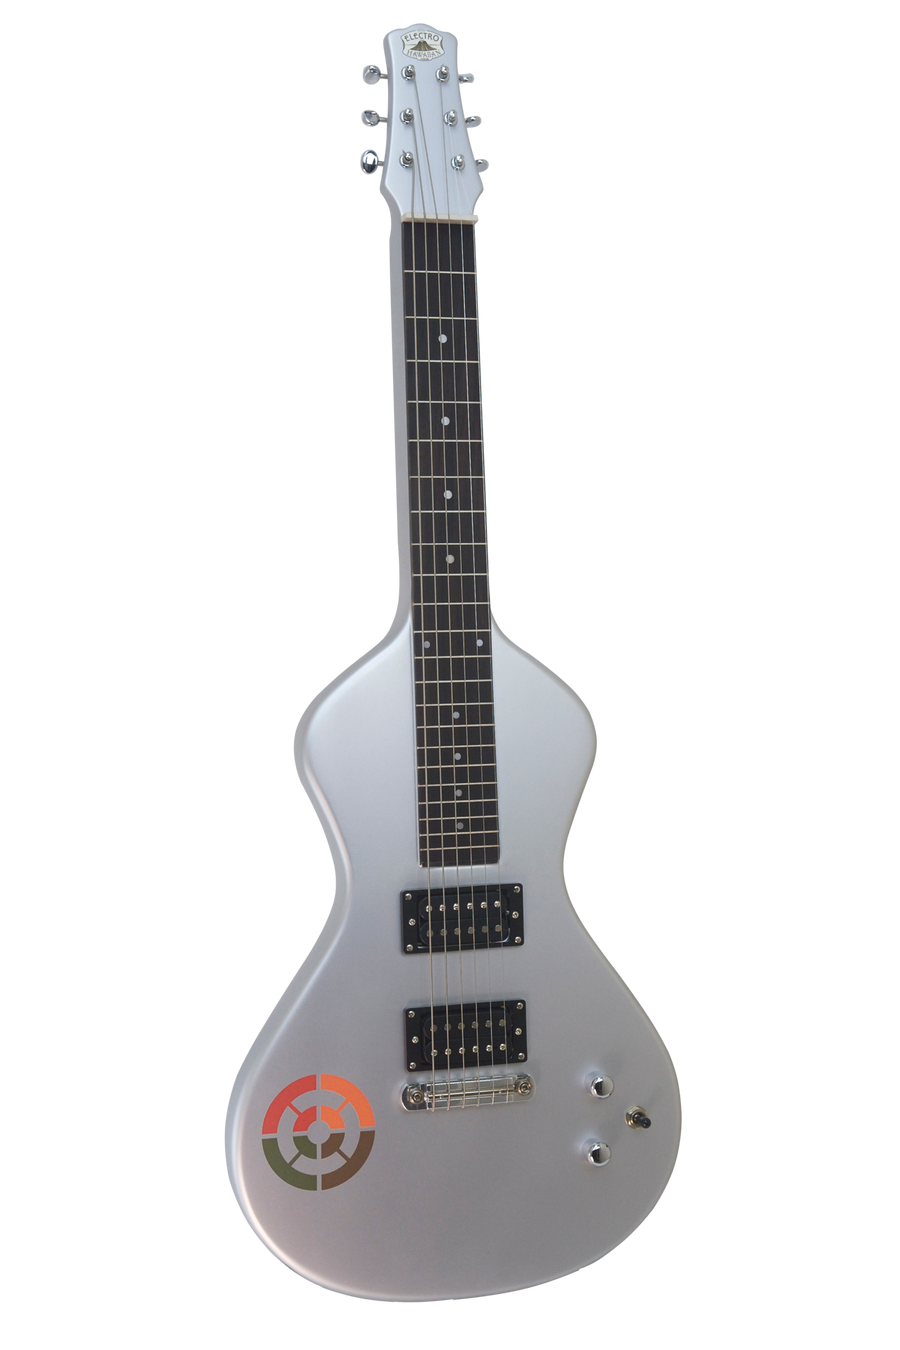 SOLD Asher Ben Harper and the Innocent Criminals Special Edition Lap Steel, Silver